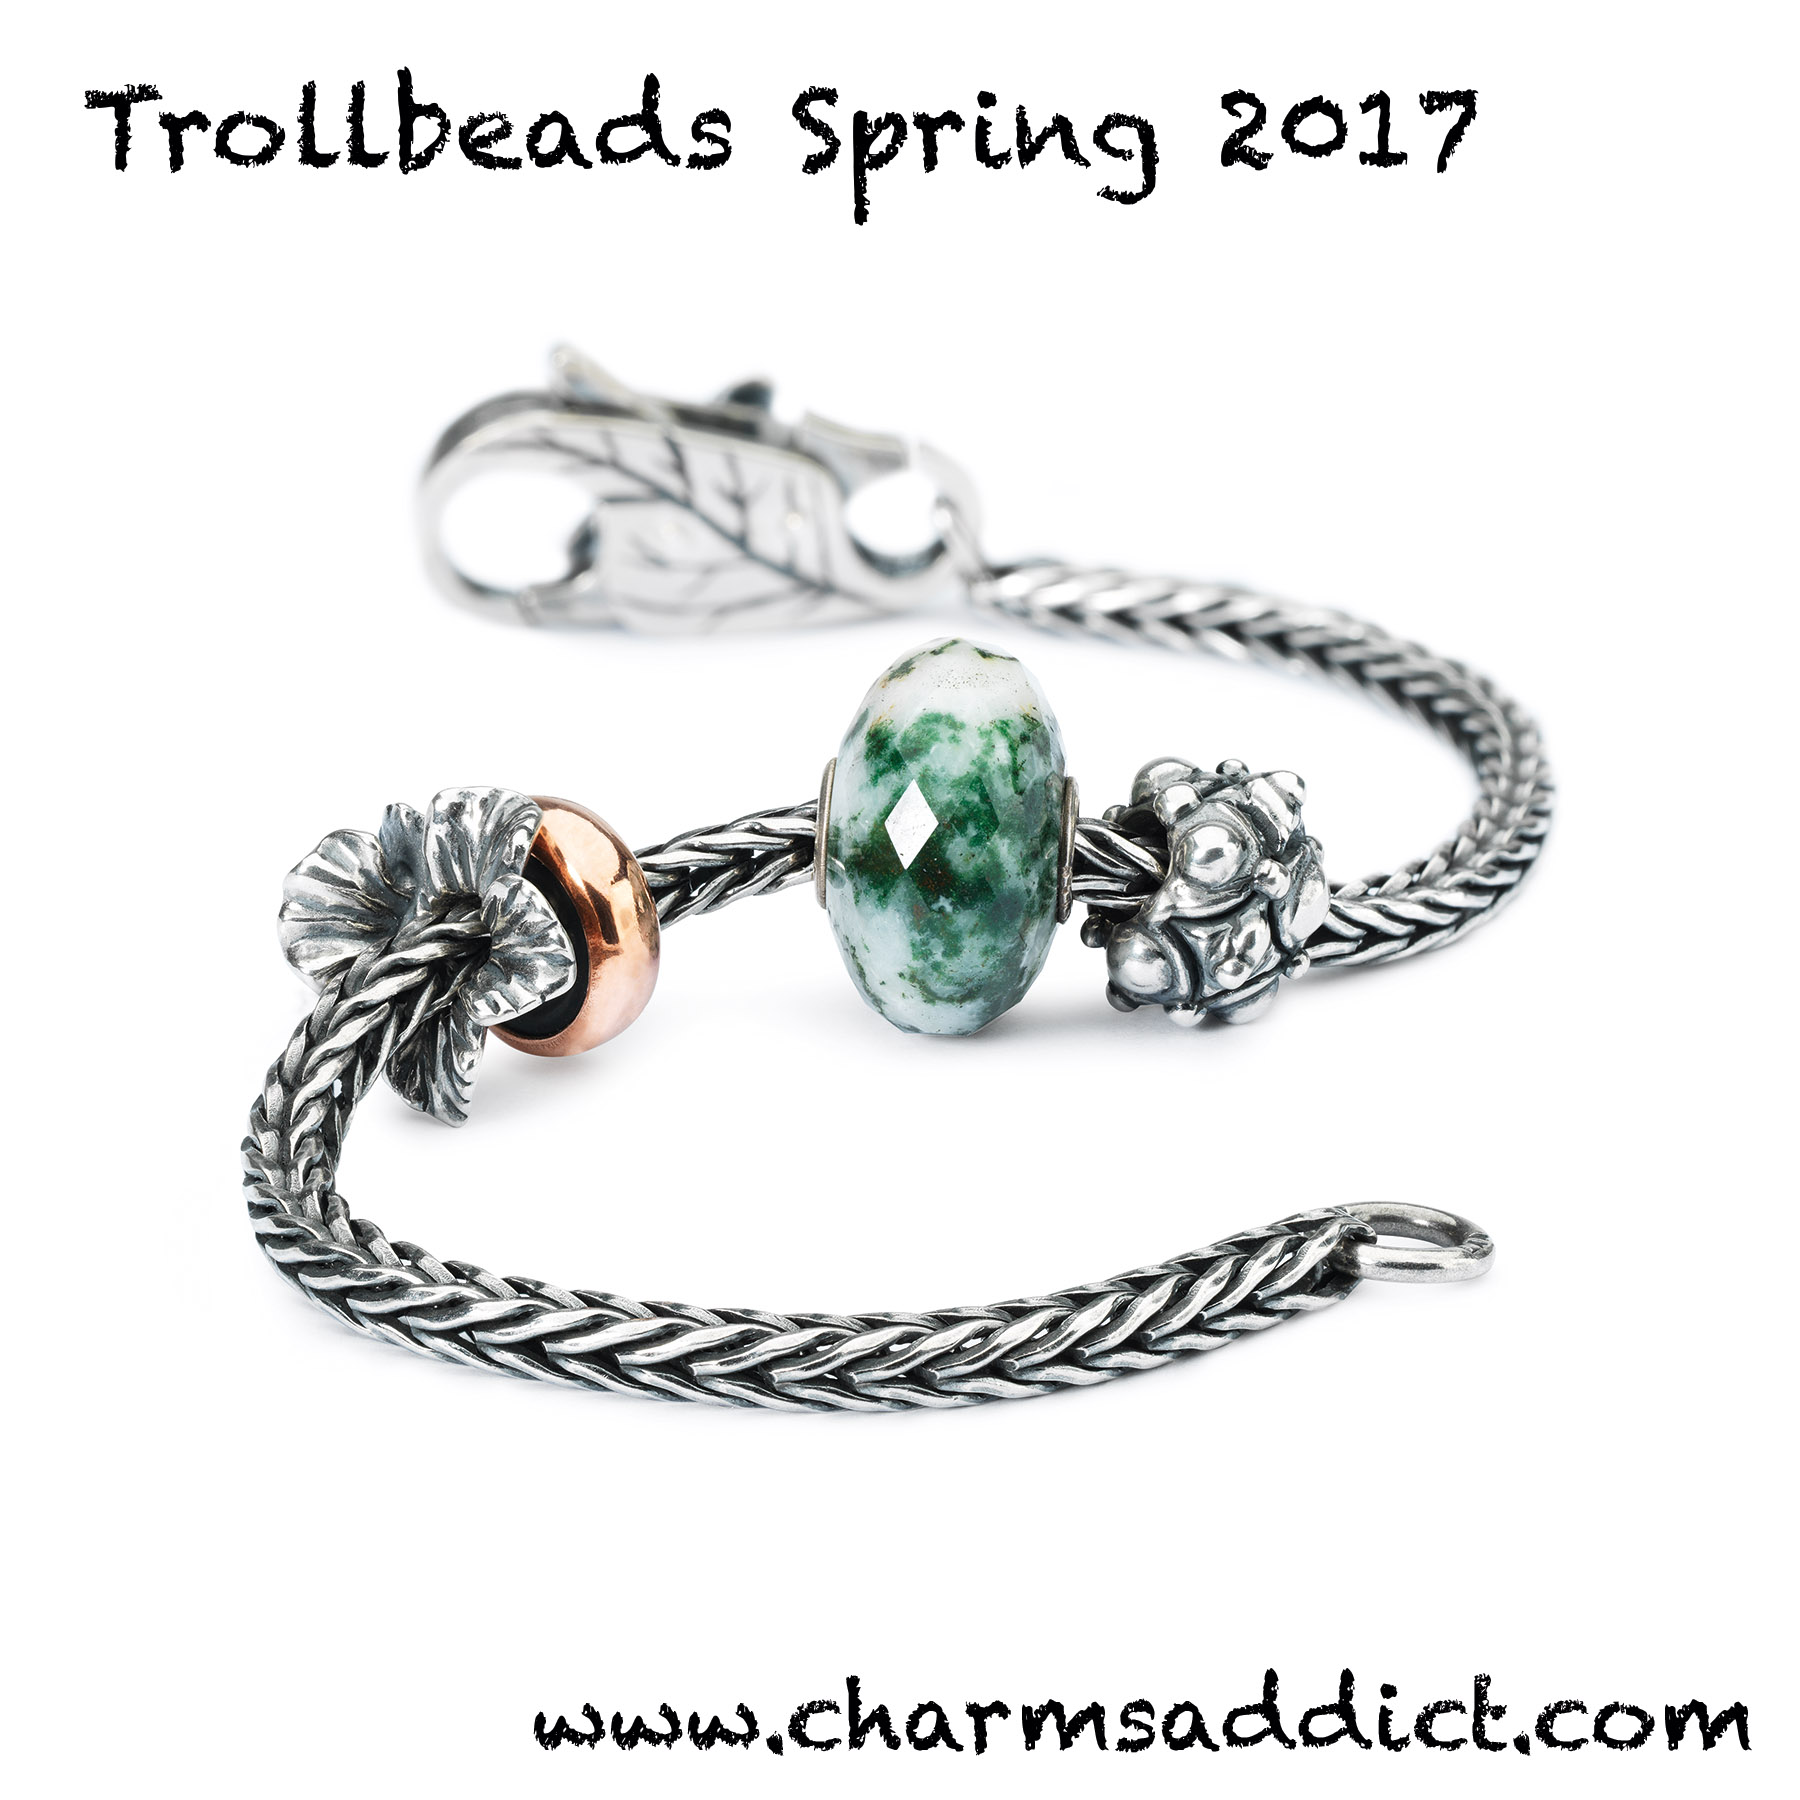 update design retailers vs canada rt ebay trollbeads tartooful fashionable pandora the inspiration australia pleasant bracelet clasp troll fancy trollbead uk tree s